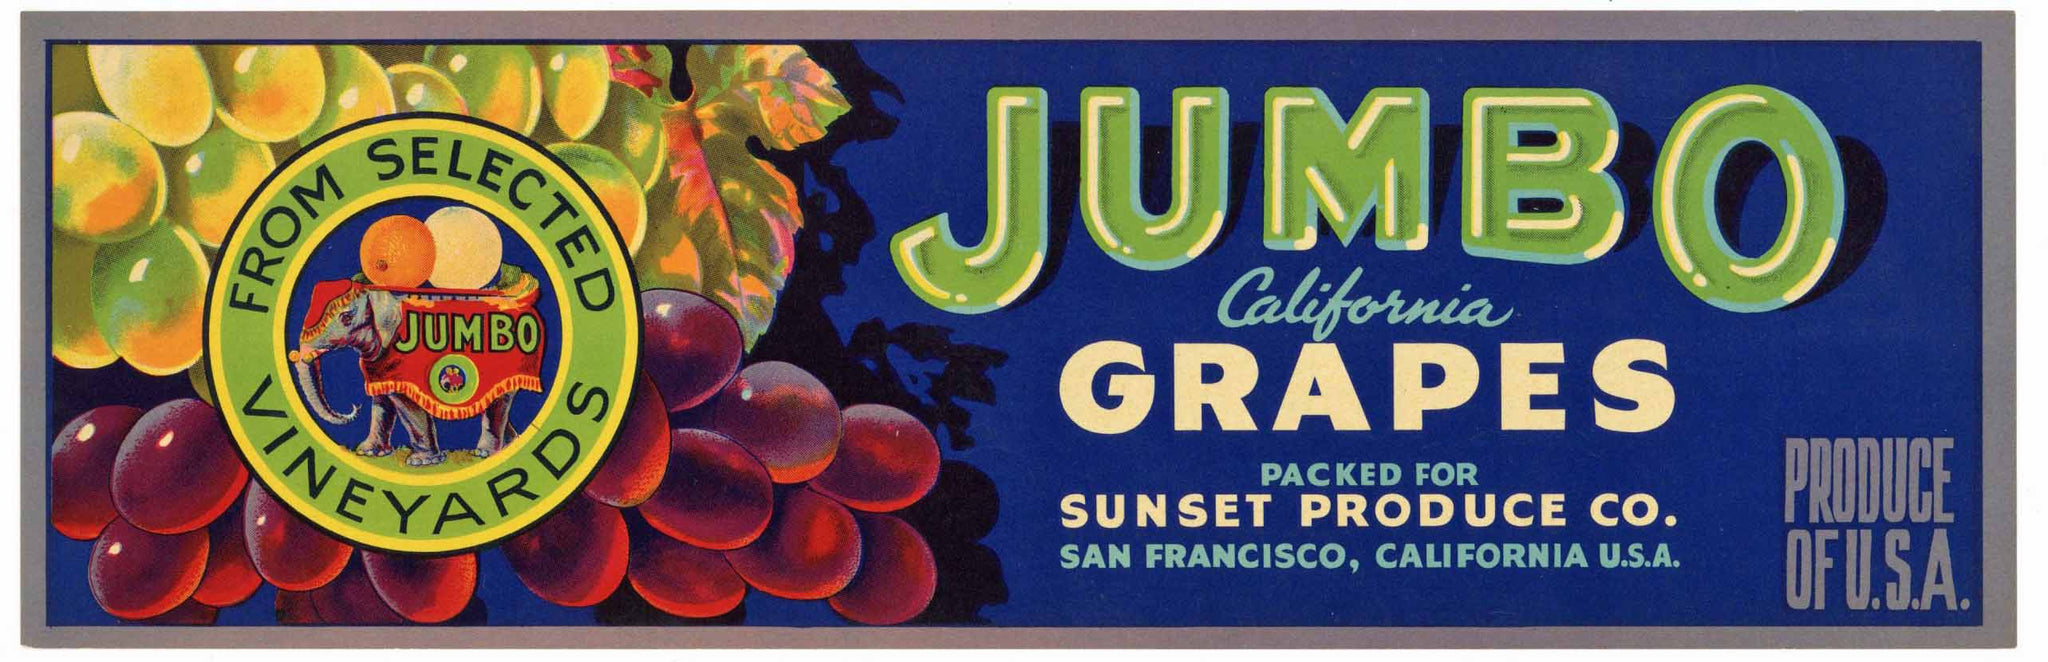 Jumbo Brand Vintage Grape Crate Label, Elephant